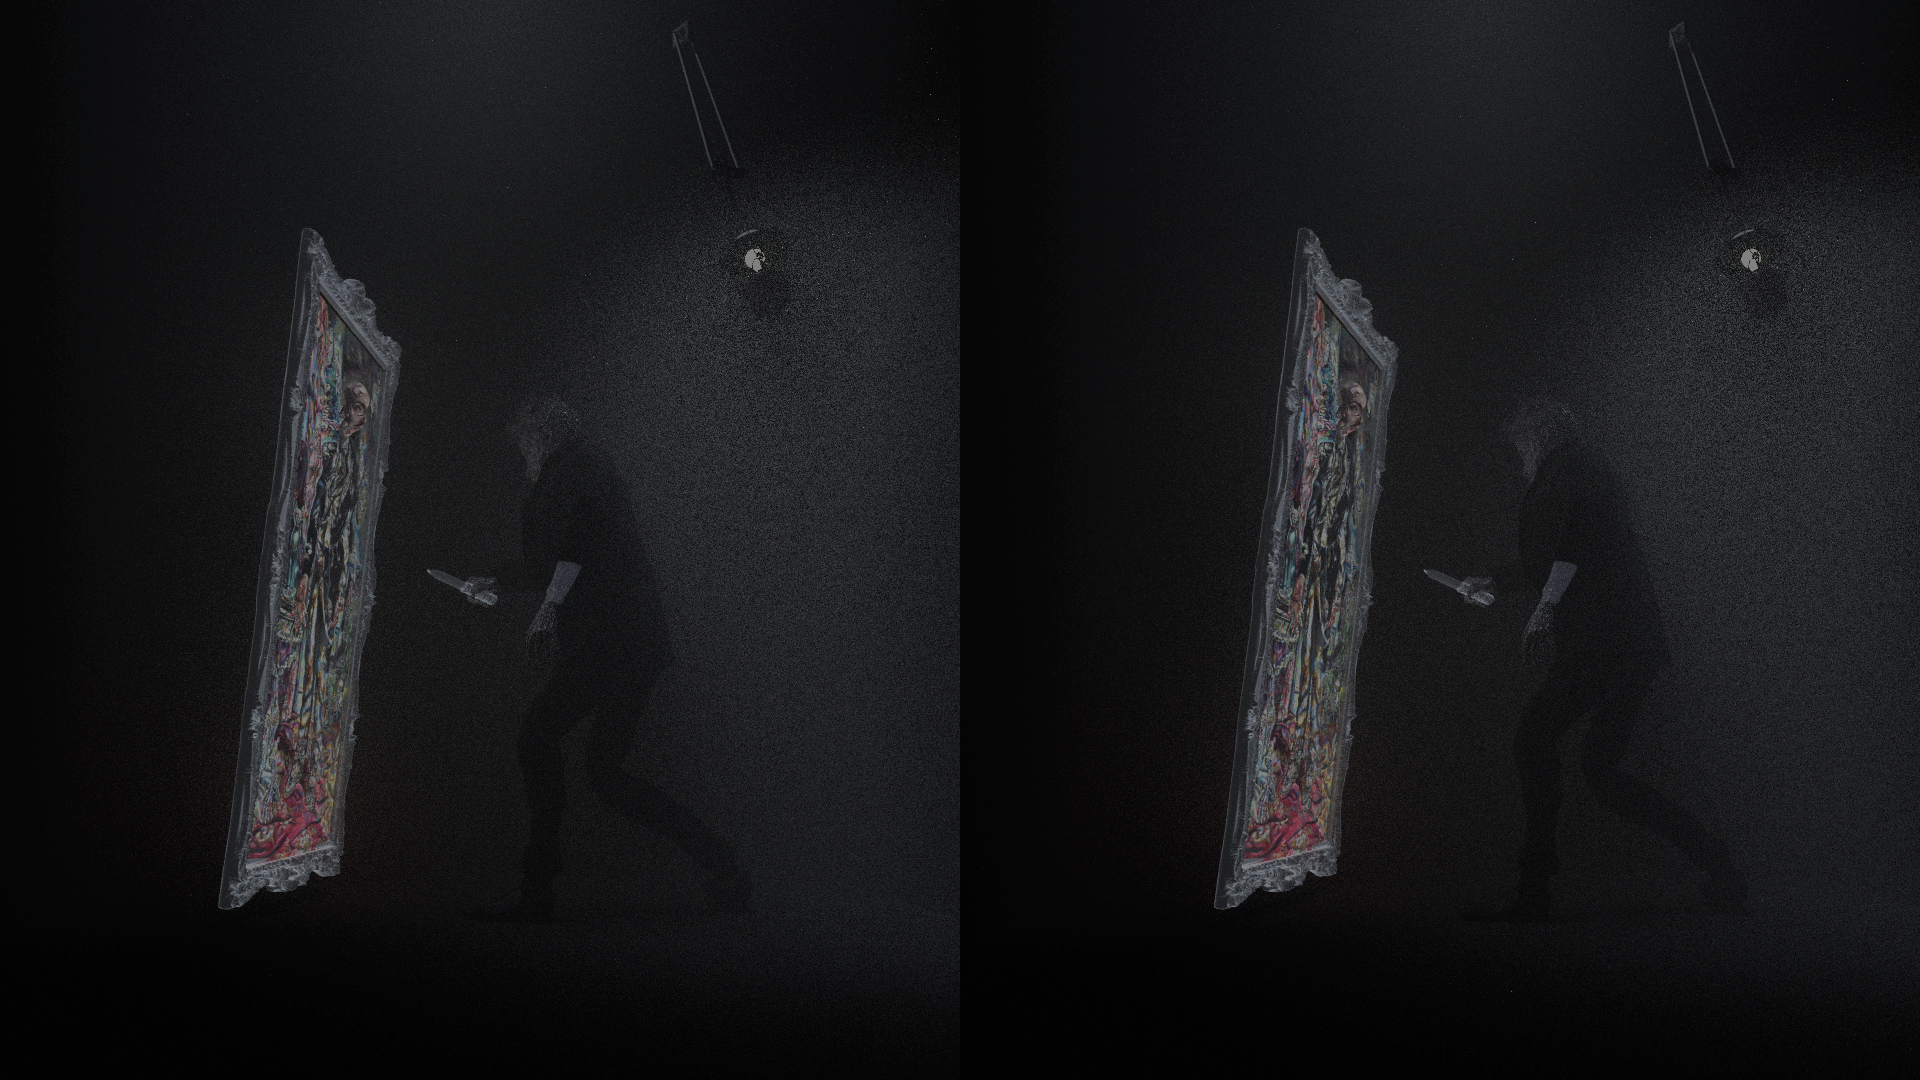 "a still from a fixed vantage point virtual reality piece made in a 3D software called Blender and embedded in a wall and engulfed by thick black curtains. It uses a simple stereographic technology available as an attachment to a phone (I used the original Google Cardboard attachment). The installation serves as a peephole into a small virtual room lit only by a swaying gas lamp where Oscar Wilde's infamous fictional character Dorian Gray, known for trading his mortality with a portrait of himself, slowly and pathetically stabs at the painting, which, unmarred by the attempts, envelops the knife and ripples in response. The stereoscopic video is on loop. The audio heard faintly from within the room is a song called ""Goodbye Little Yellow Bird"" sung by the Angela Lansbury in the 1945 American film adaptation of the novel. The original portrait I sampled for this piece was also commissioned for the 1945 film and painted by Ivan Albright."